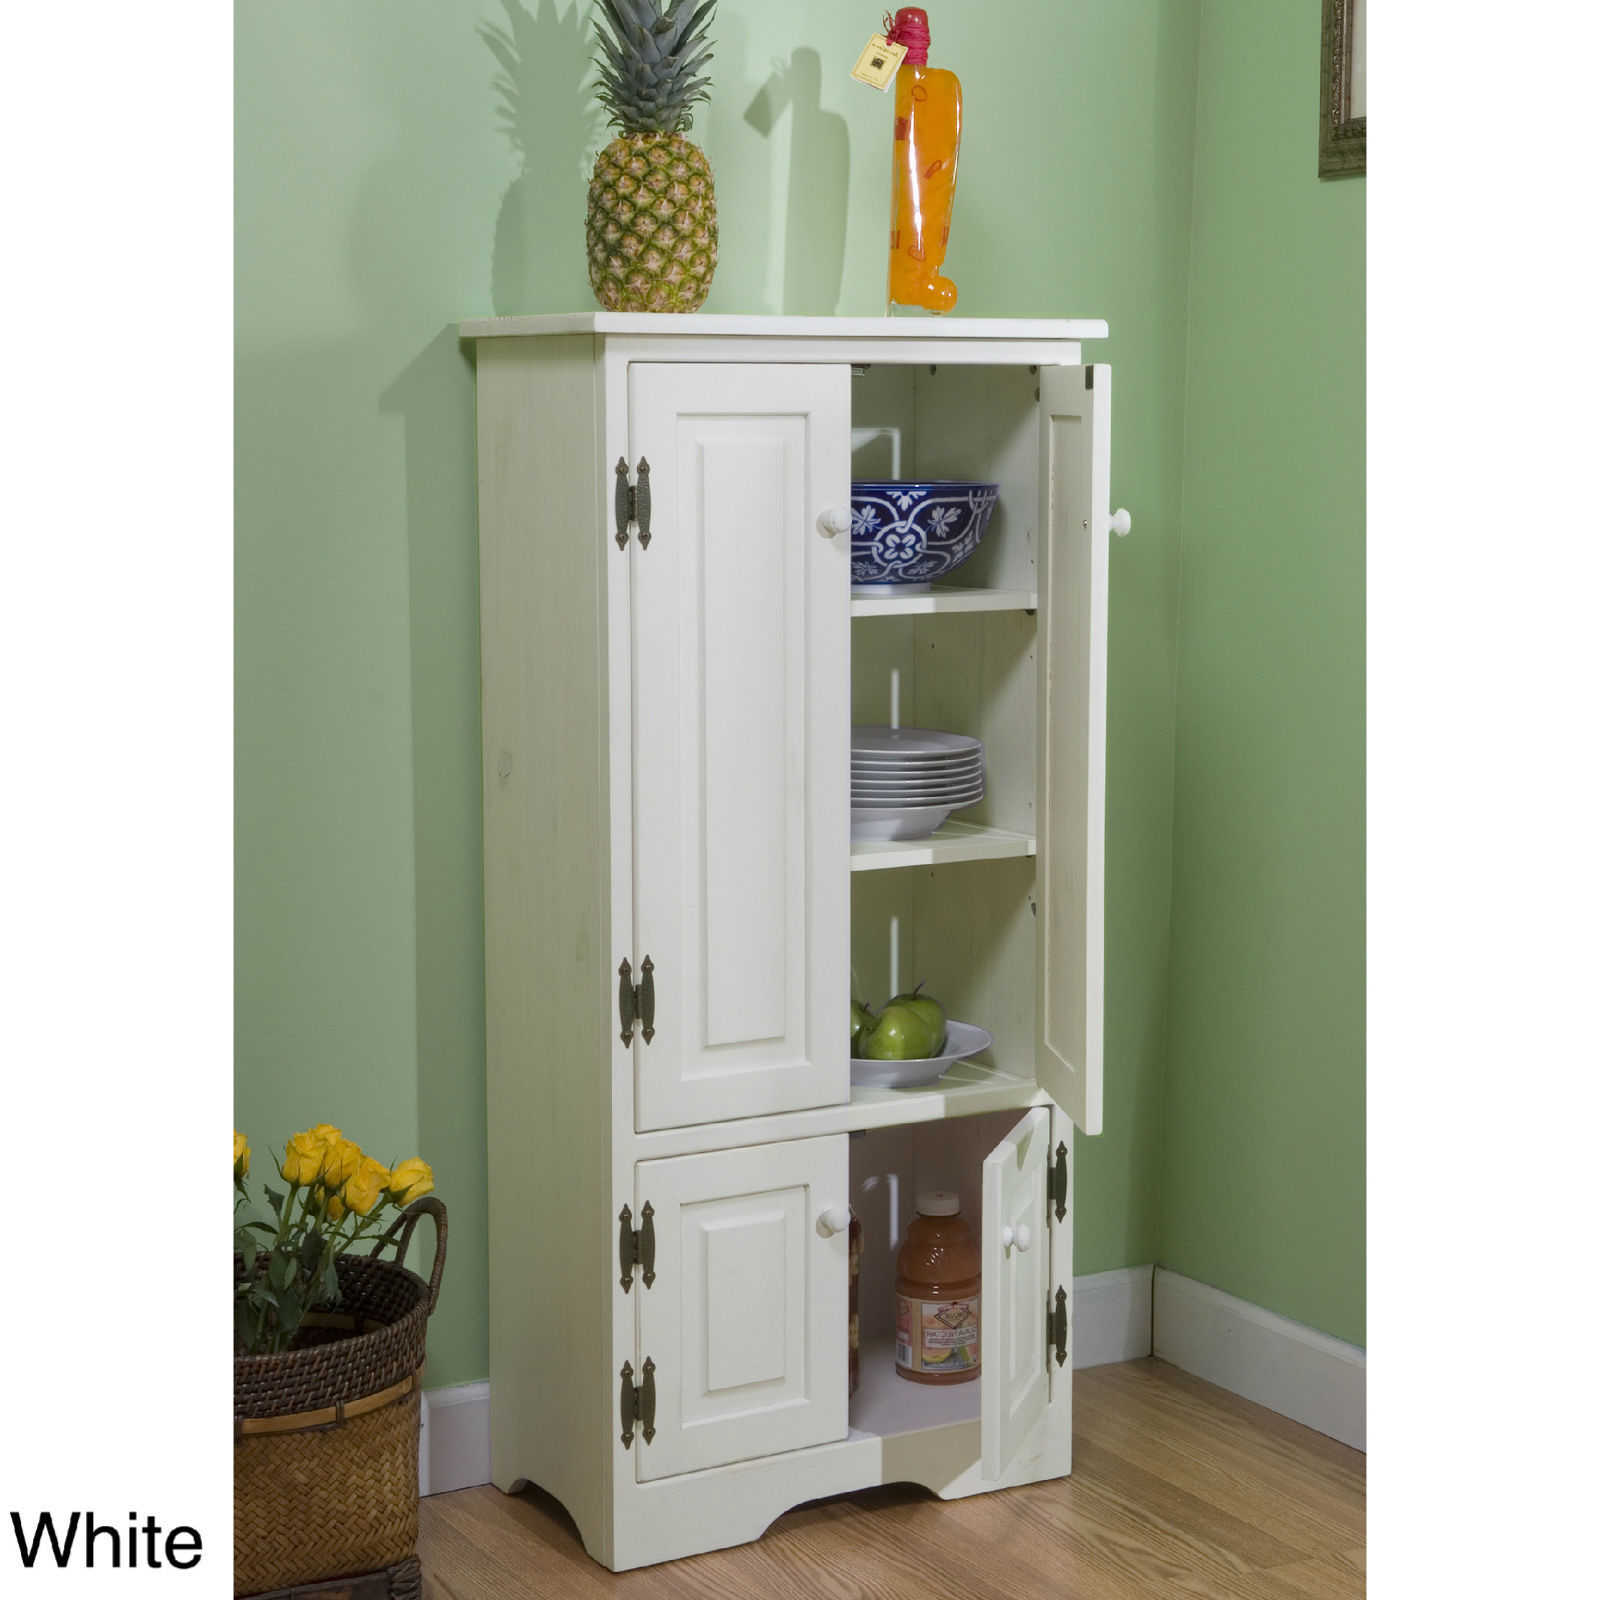 Tall Kitchen Storage Units: Tall Bathroom Cabinet Linen Storage Kitchen Pantry